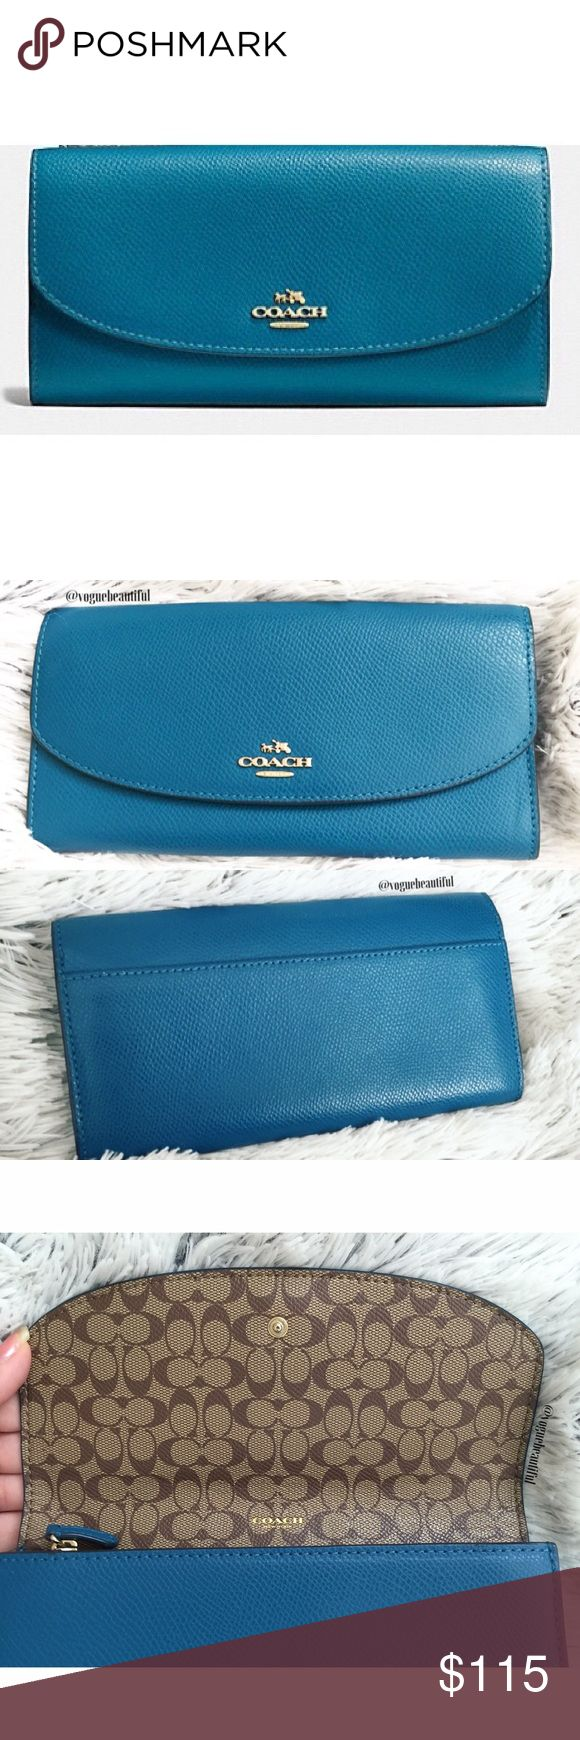 Coach Teal Slim Envelope Wallet Gorgeous teal color 100% authentic Coach wallet • color is most like stock photo, my camera didn't do the beautiful teal color justice• in like new condition with no flaws • DIMENSIONS: 7.75 inches across x 4 inches in height (when closed) • snaps open • 12 card slots, zipper coin pouch, and cash pocket • ✨matching Coach Bag also available in my closet! ✨ • NO TRADES‼️ Coach Bags Wallets